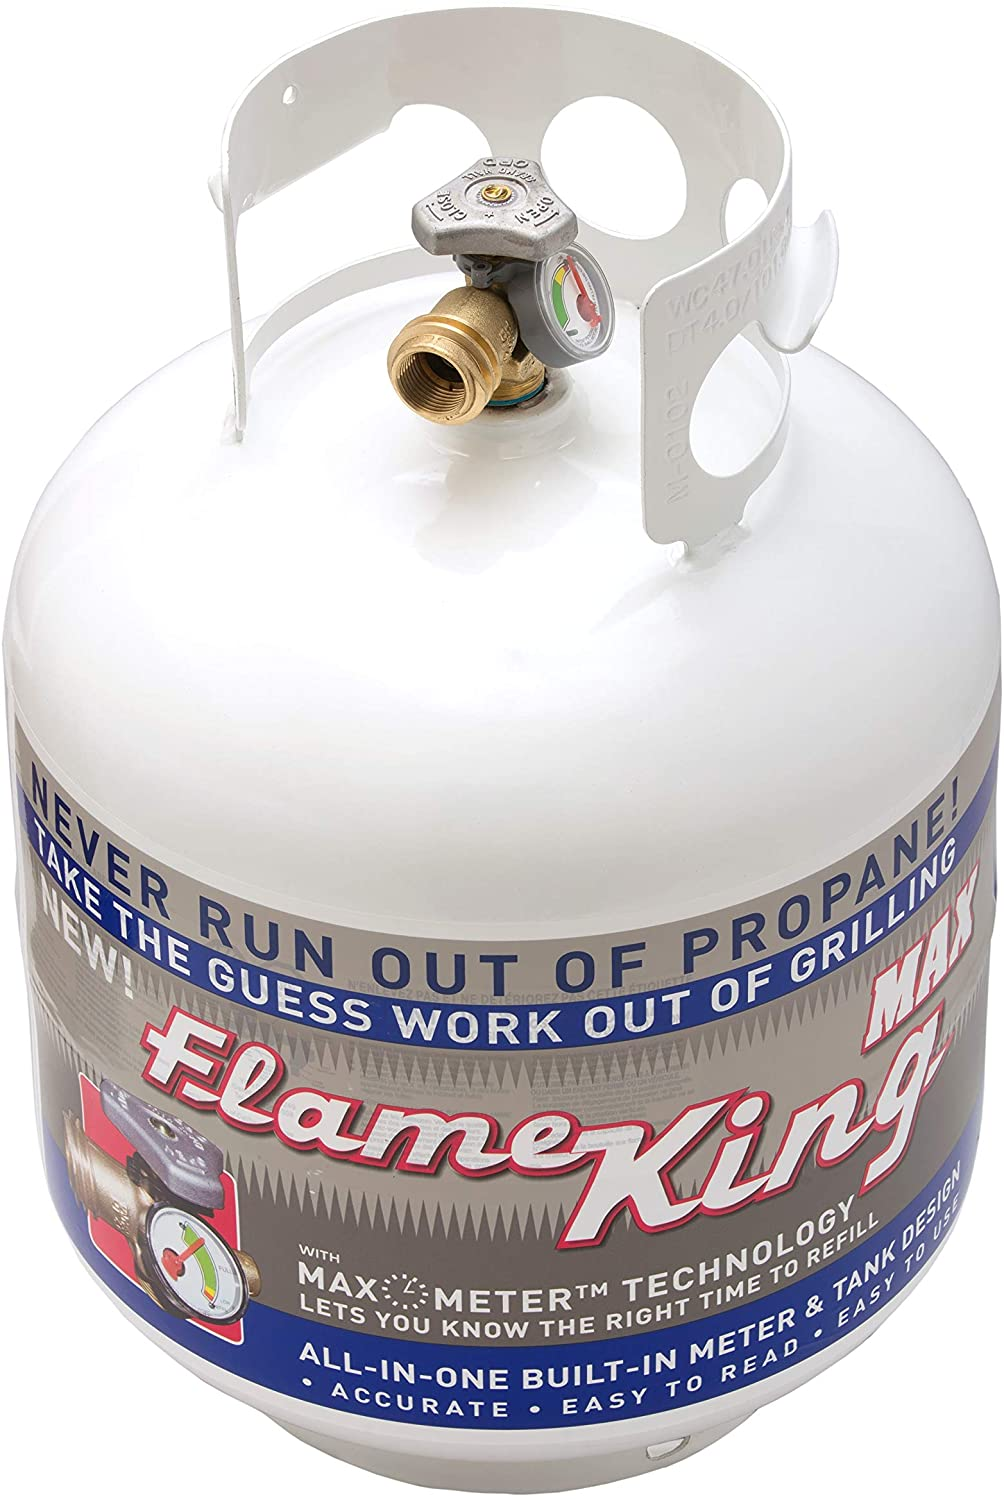 Fire Pits Flame King 20 LB Steel Horizontal Propane Tank Cylinder with OPD Valve and Built in Gauge for Fire Tables and Truck Campers Patio Heaters Barbeques